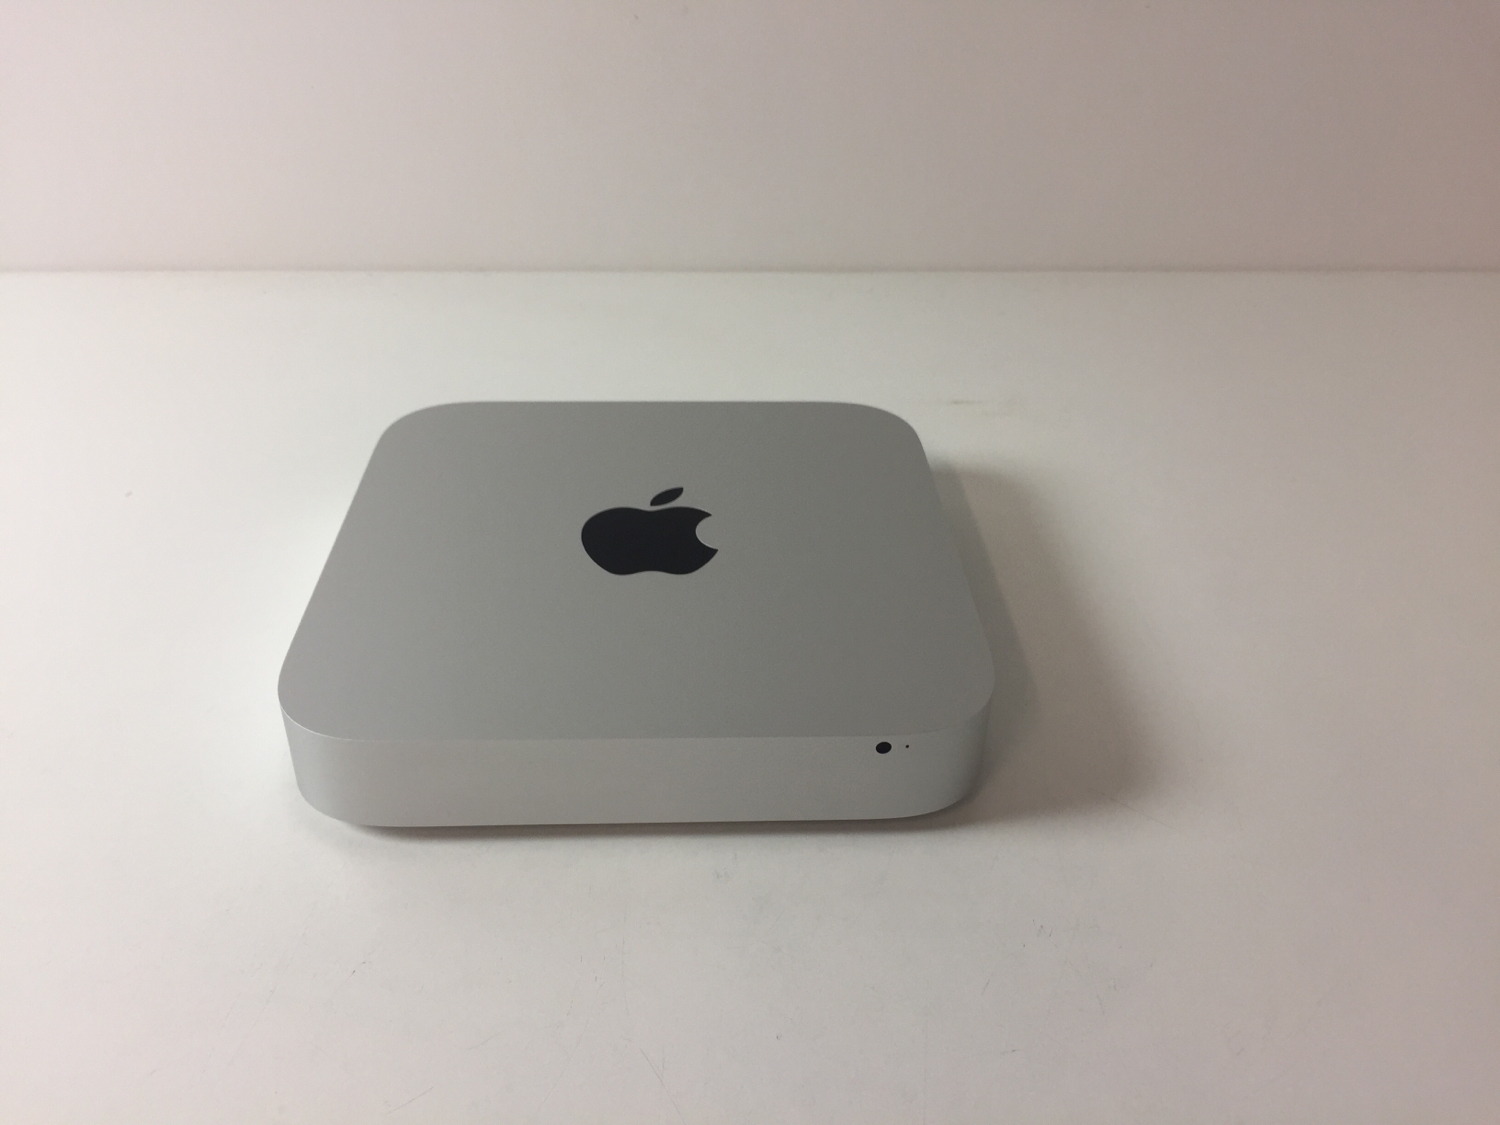 Mac Mini Late 2014 (Intel Core i5 1.4 GHz 4 GB RAM 500 GB HDD), Intel Core i5 1.4 GHz (Turbo Boost 2.7 GHz), 4 GB , 500 GB HDD  , imagen 1